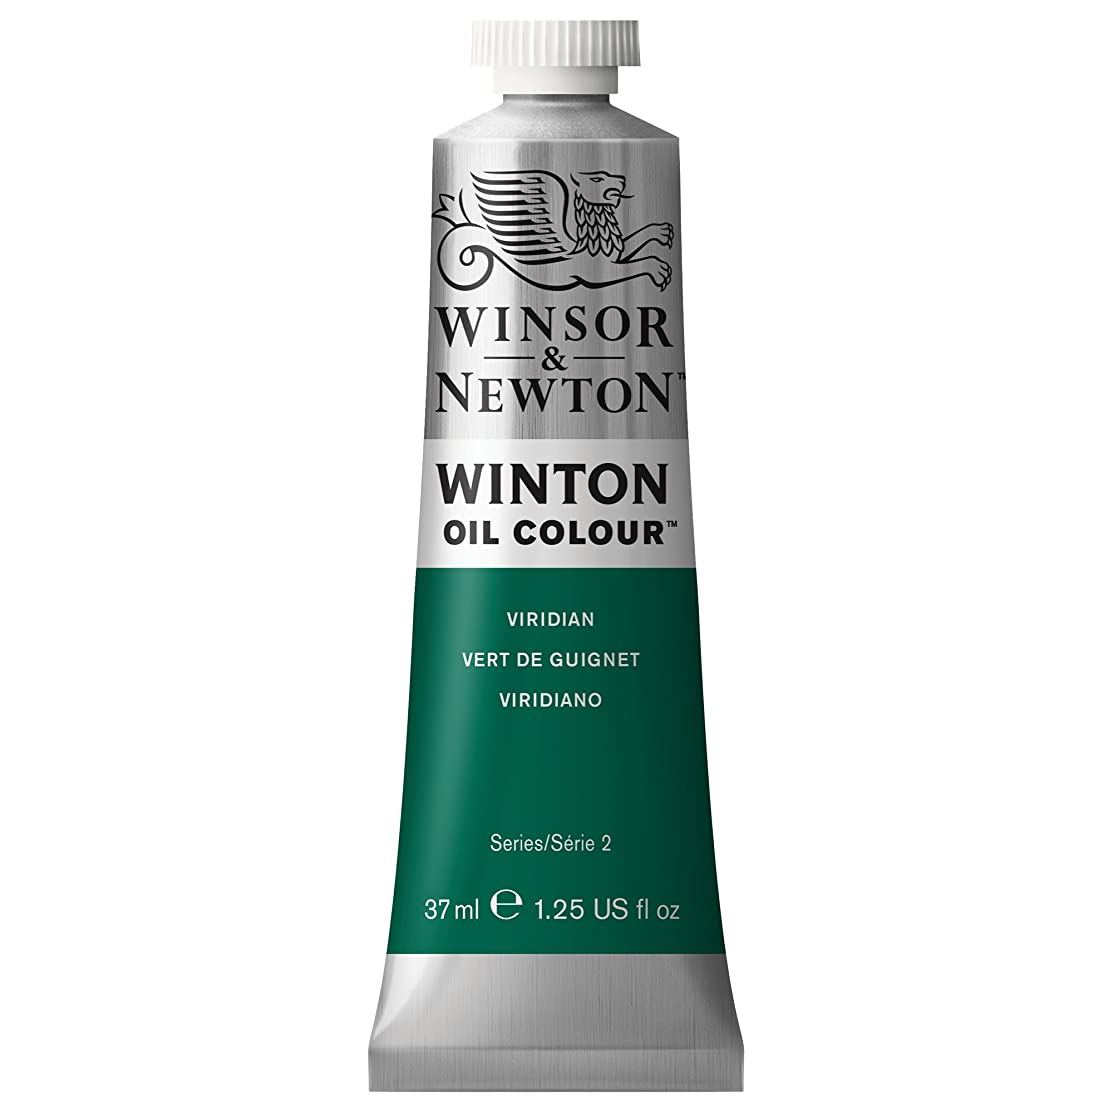 Winsor & Newton Winton Oil Colour Paint, 37ml tube, Viridian